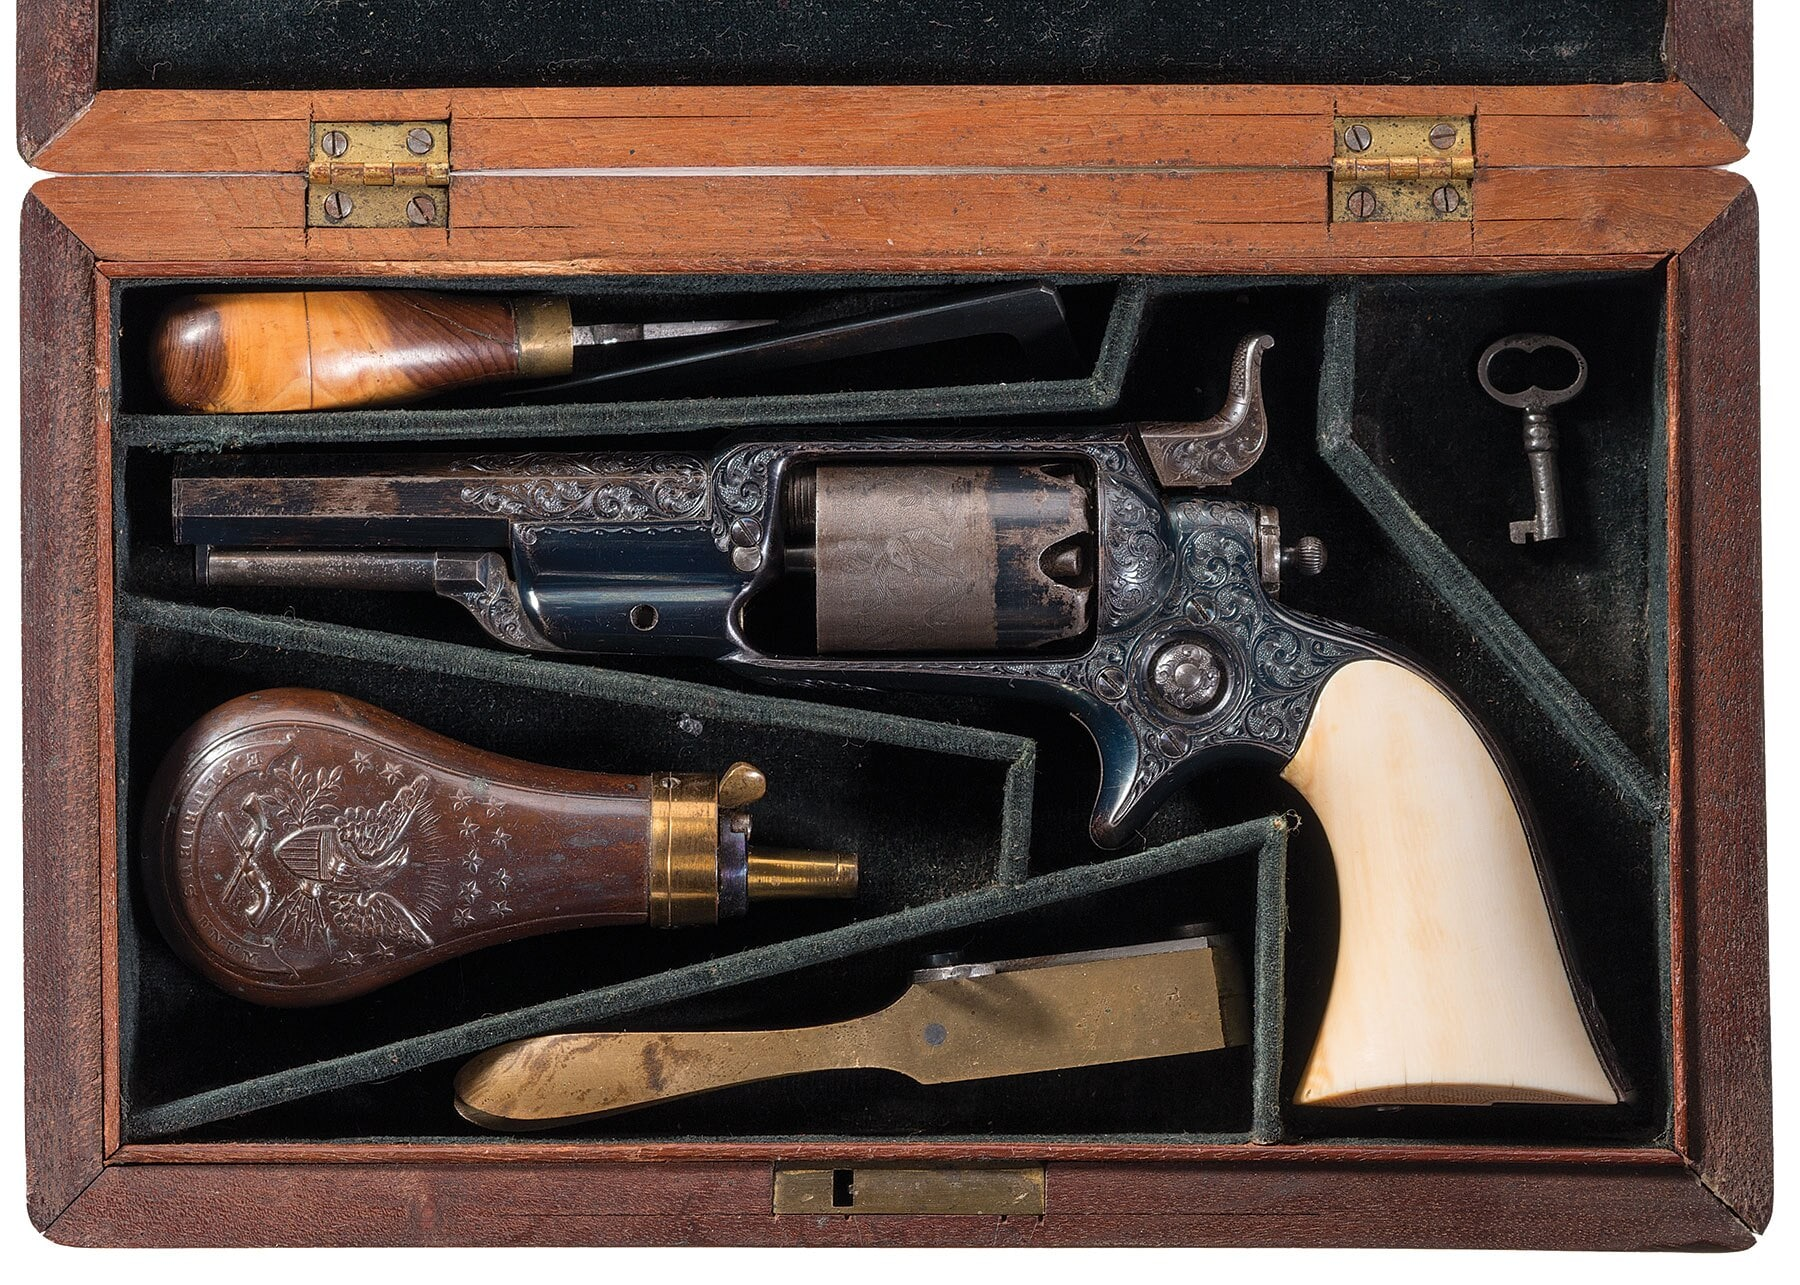 Ever seen a 2nd Model Colt Model 1855 Sidehammer Revolver in .28-caliber? Here you go. They also have a very nice Root model with a 3.5-inch barrel https://www.rockislandauction.com/detail/71/110/cased-colt-model-1855-root-model-percussion-revolver#detail